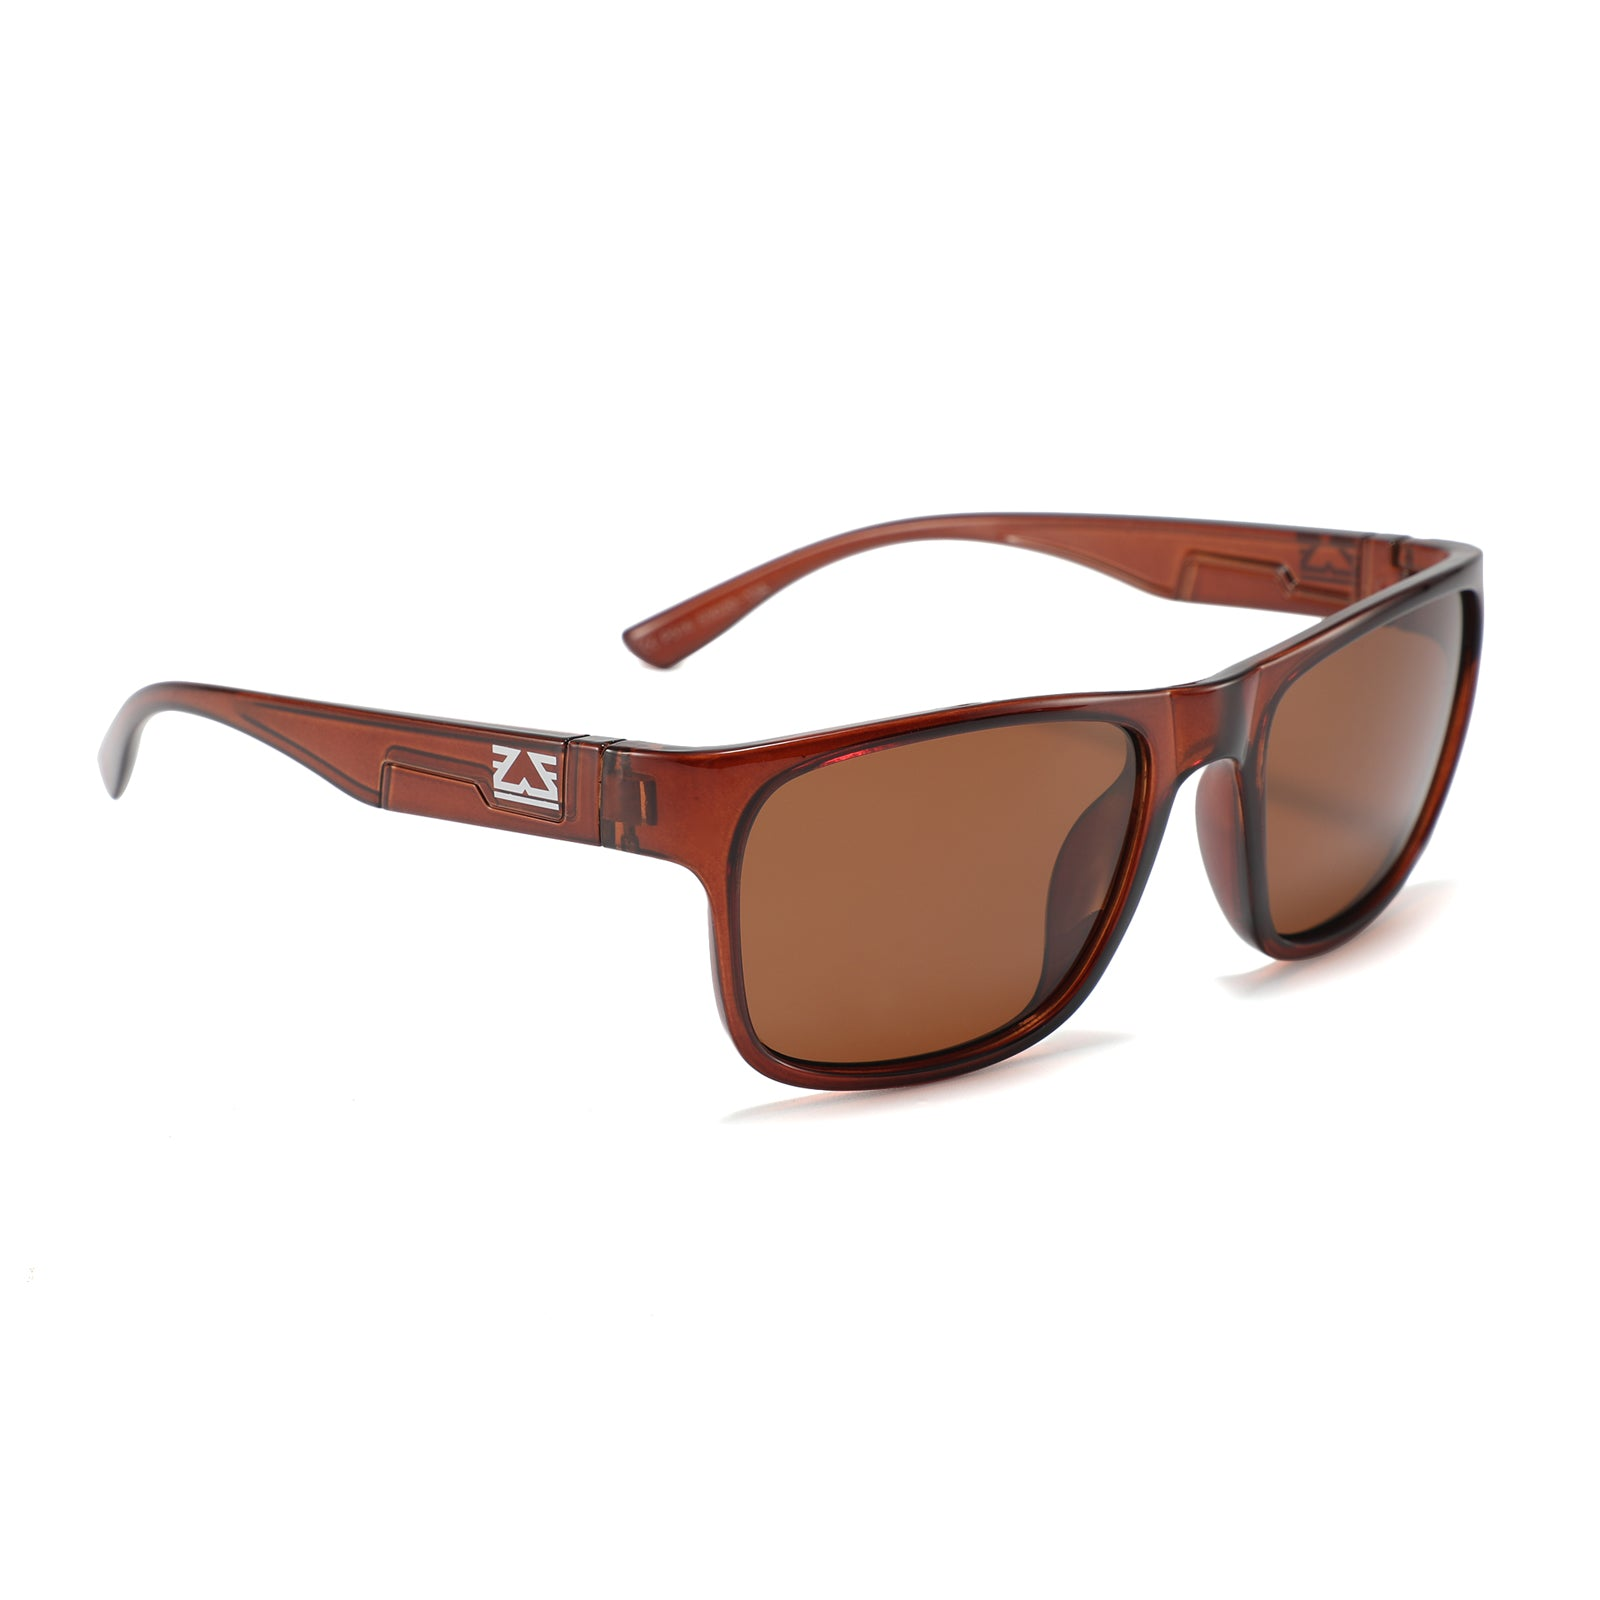 OUTER BANKS SUNGLASSES - Whieldon Fly Fishing